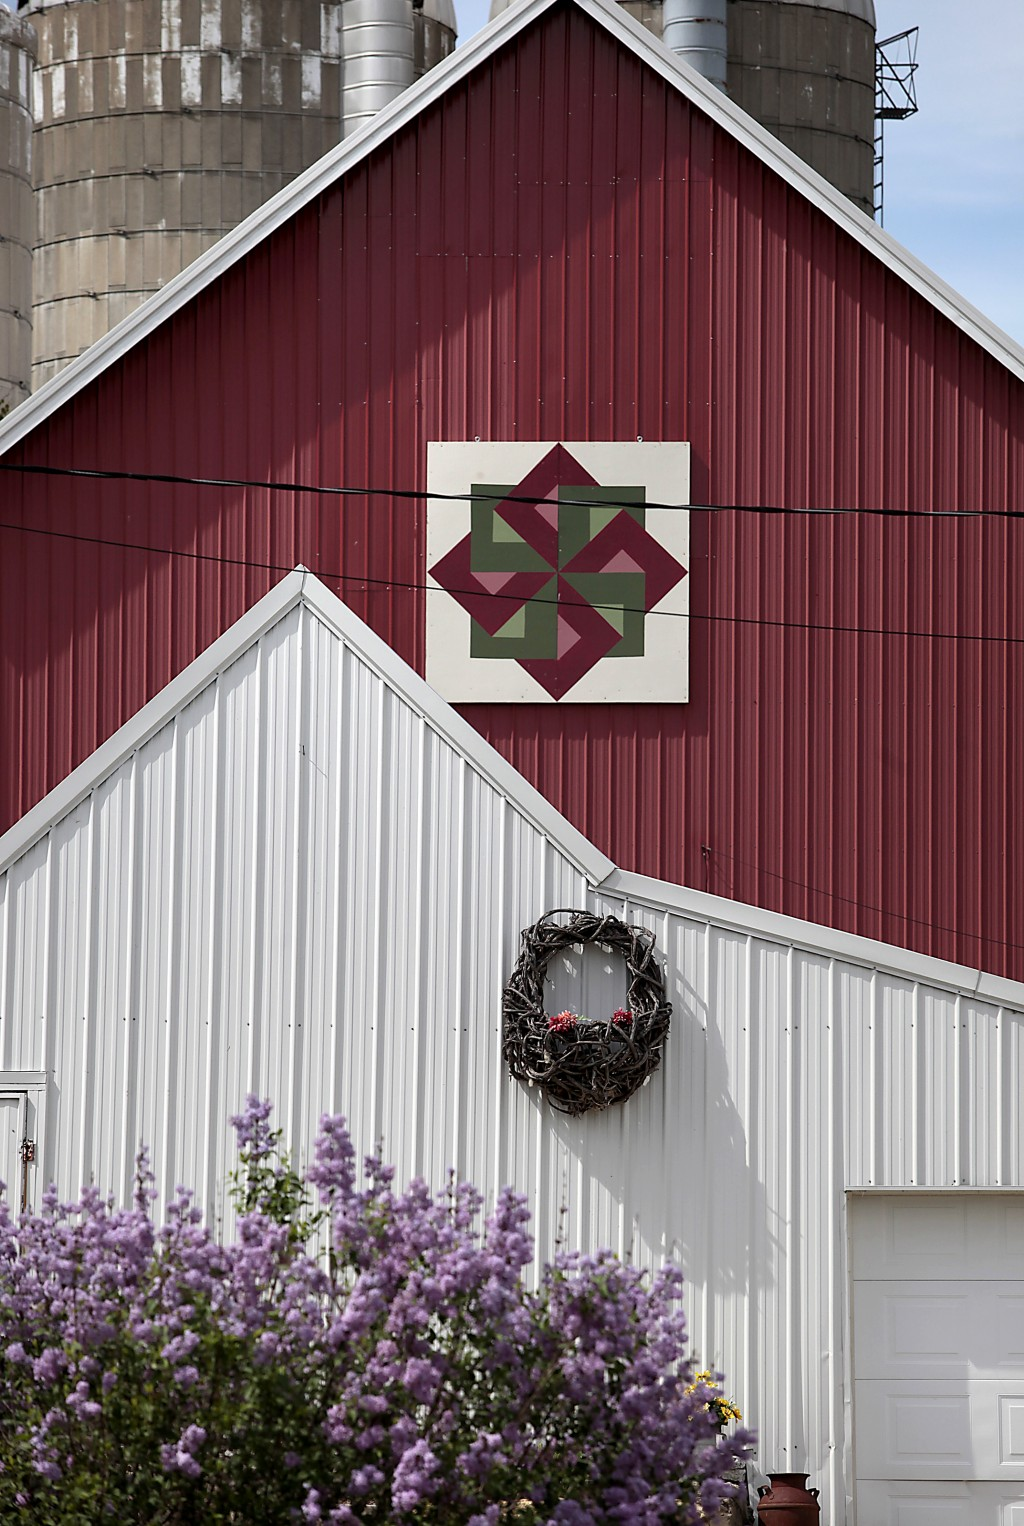 Photos: Barn quilts : Gallery